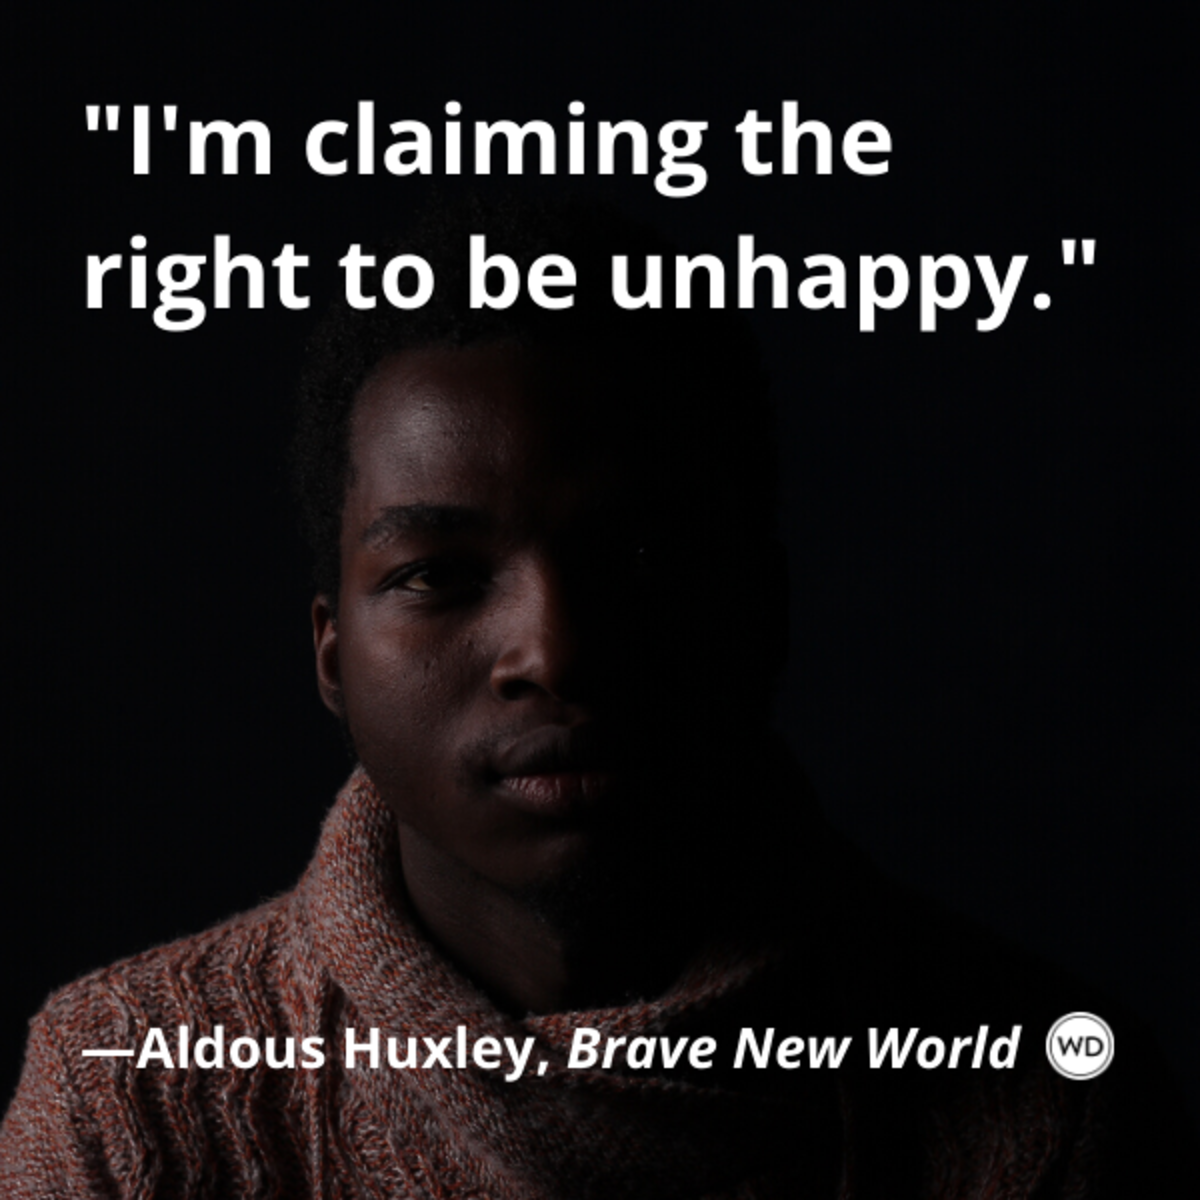 aldous_huxley_brave_new_world_quotes_im_claiming_the_right_to_be_unhappy